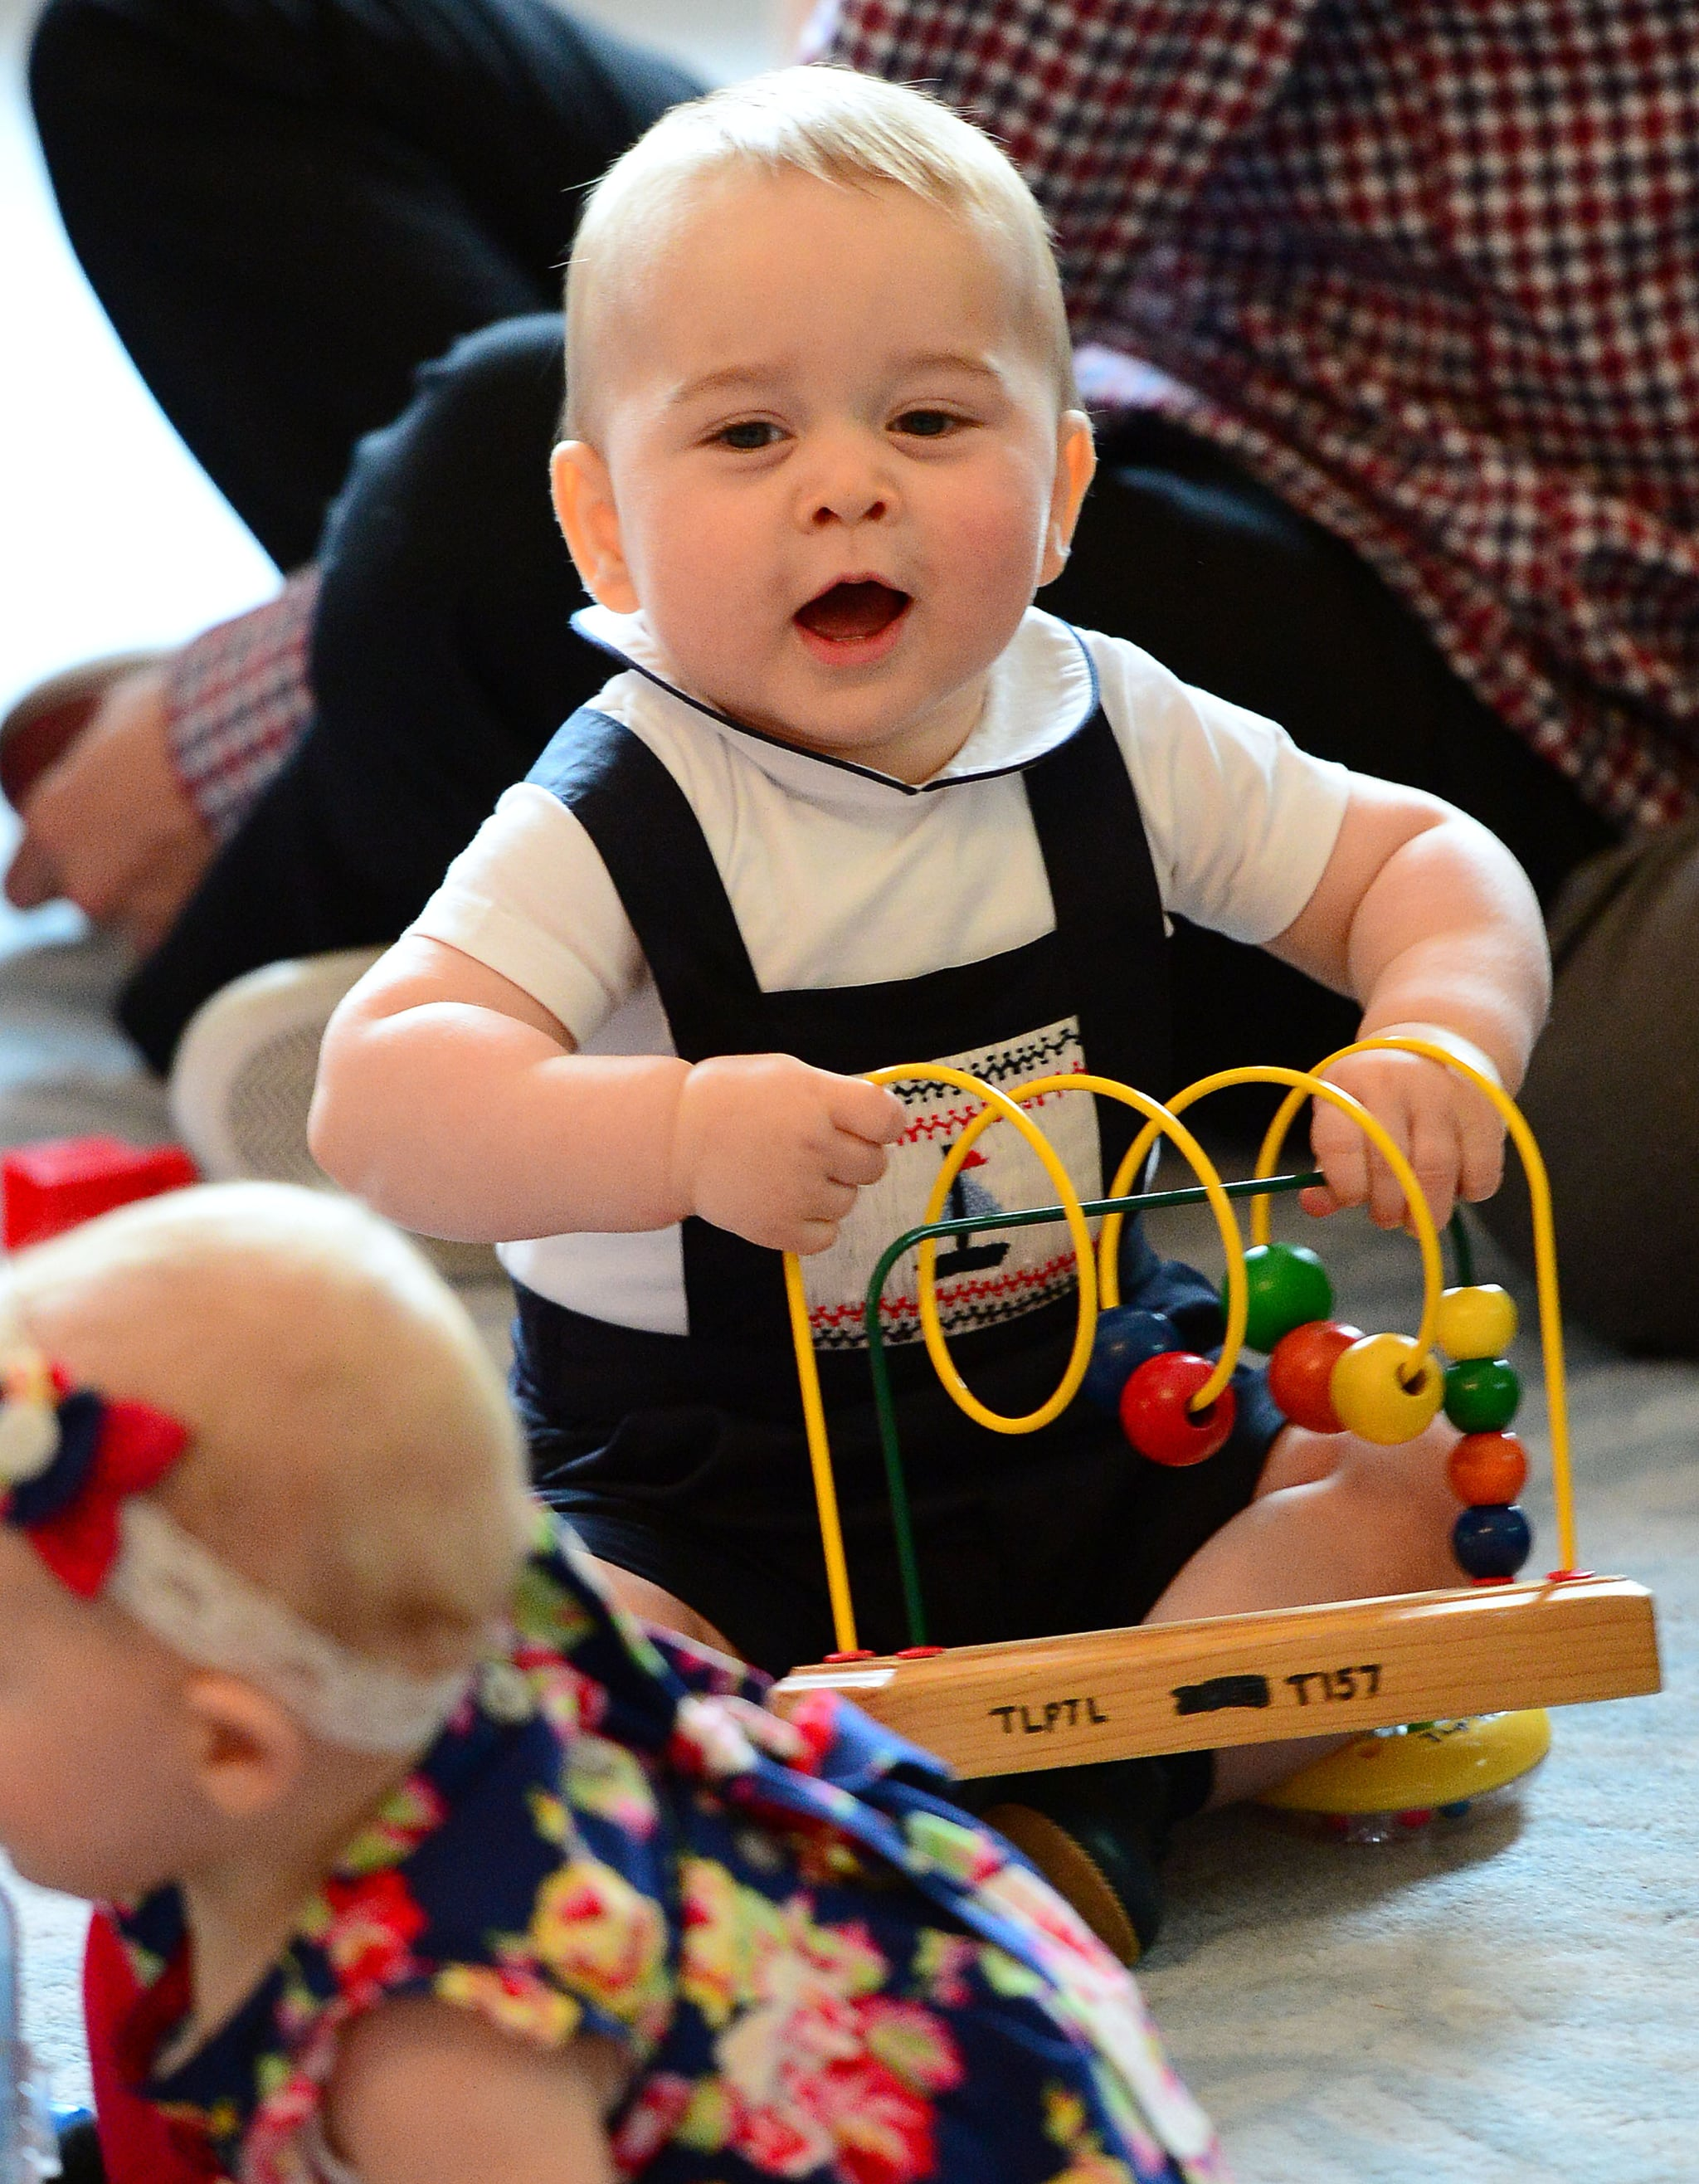 When He Totally Owned the Playgroup